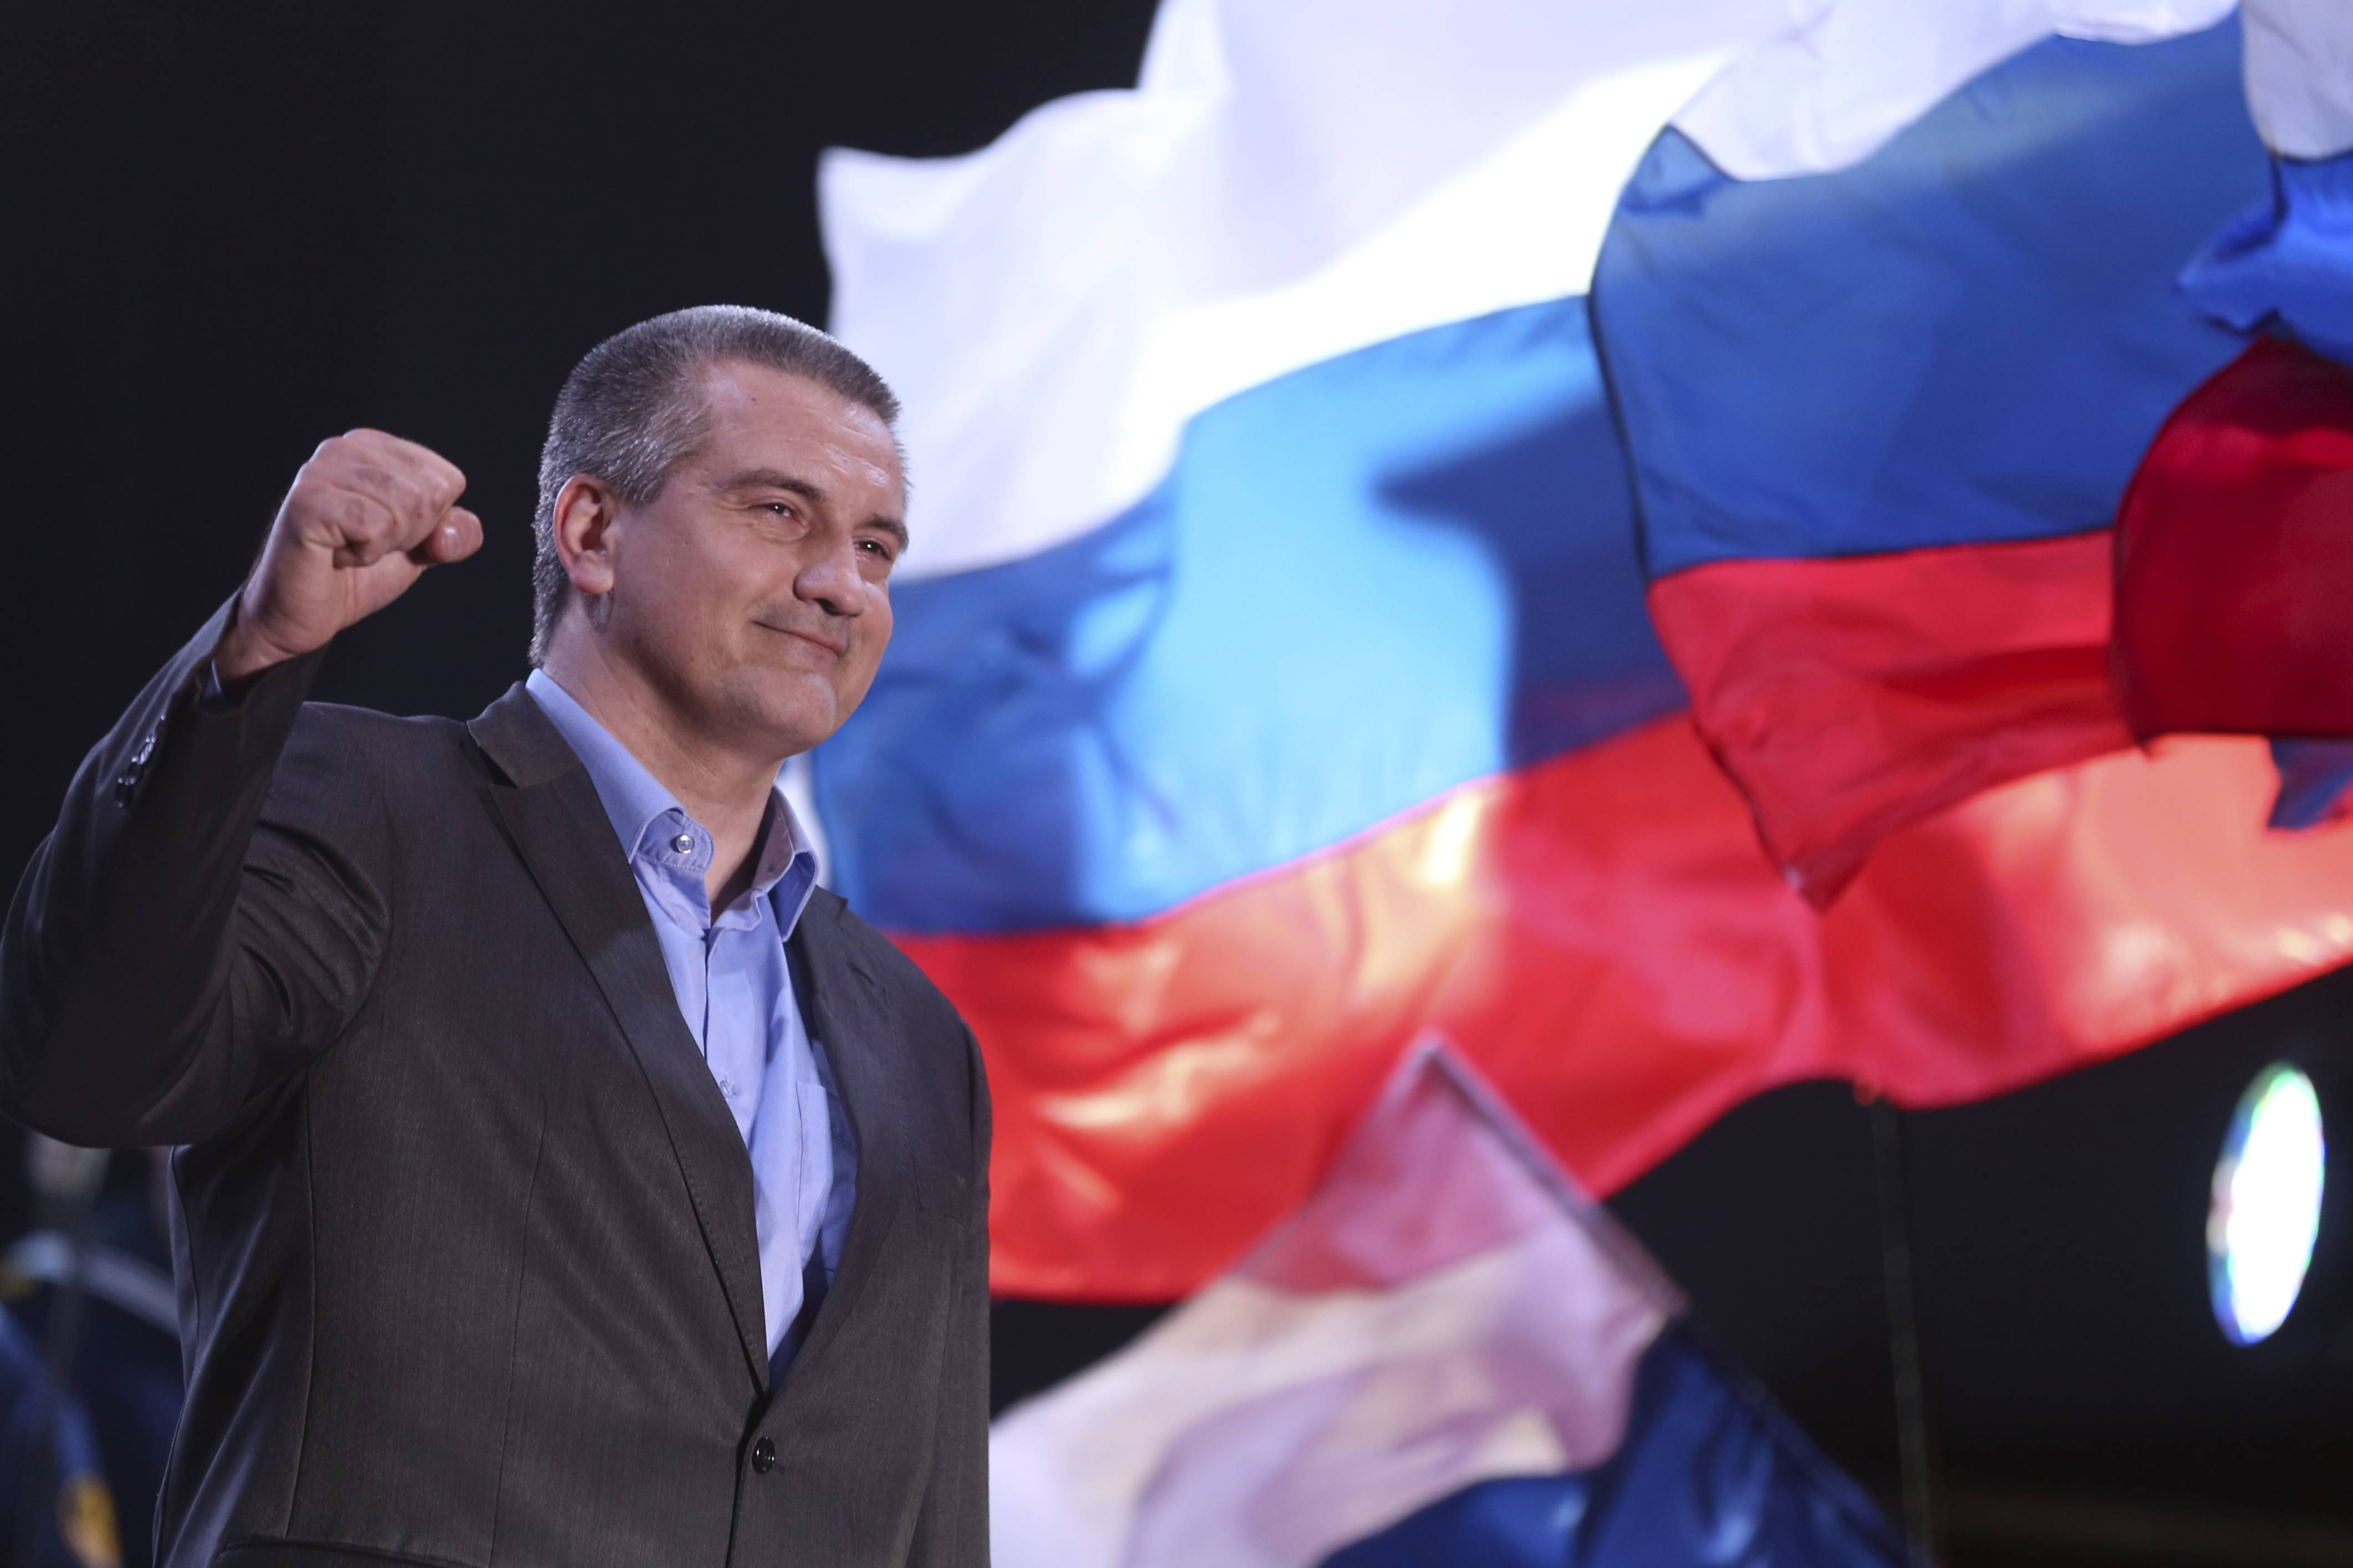 The head of Crimea's Russia-backed leader Sergei Aksyonov gestures as people celebrate in Lenin Square, Simferopol, Ukraine, Sunday. Crimeans voted overwhelmingly to secede from Ukraine and join Russia.